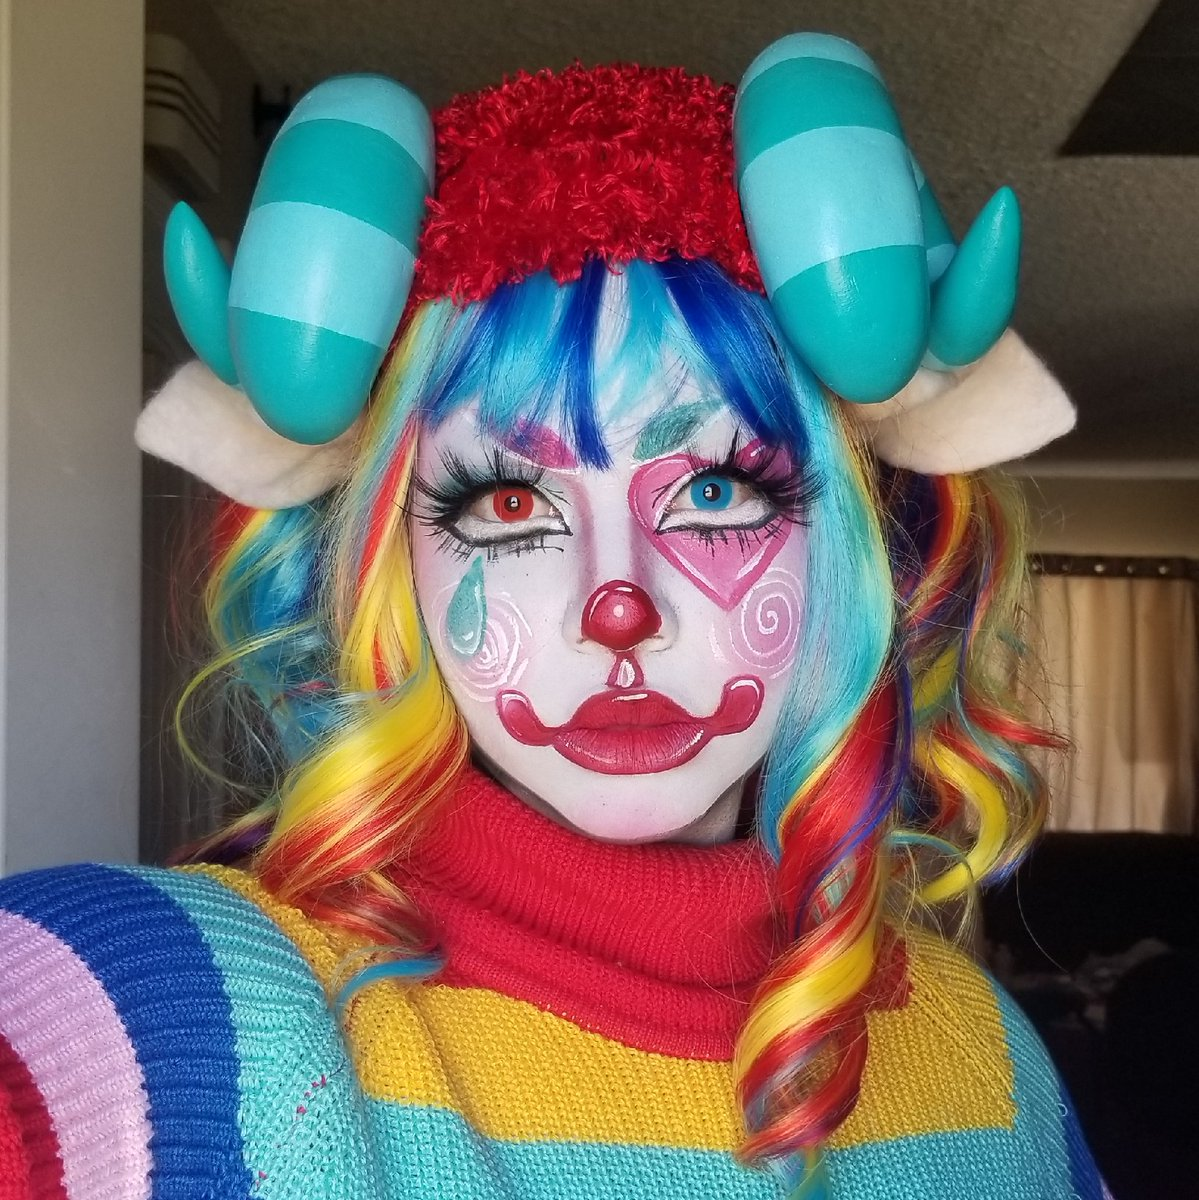 Pietro from Animal Crossing by @lilcultbab using Clown White, Setting Powder in Neutral and Paradise Makeup AQ  #mehronmakeup #animalcrossing #pietro #clown #clownmakeup #videogames #cosplay #cosmakeup #charactermakeup #creativemakeup #colorful https://t.co/6FaVQZeKpC